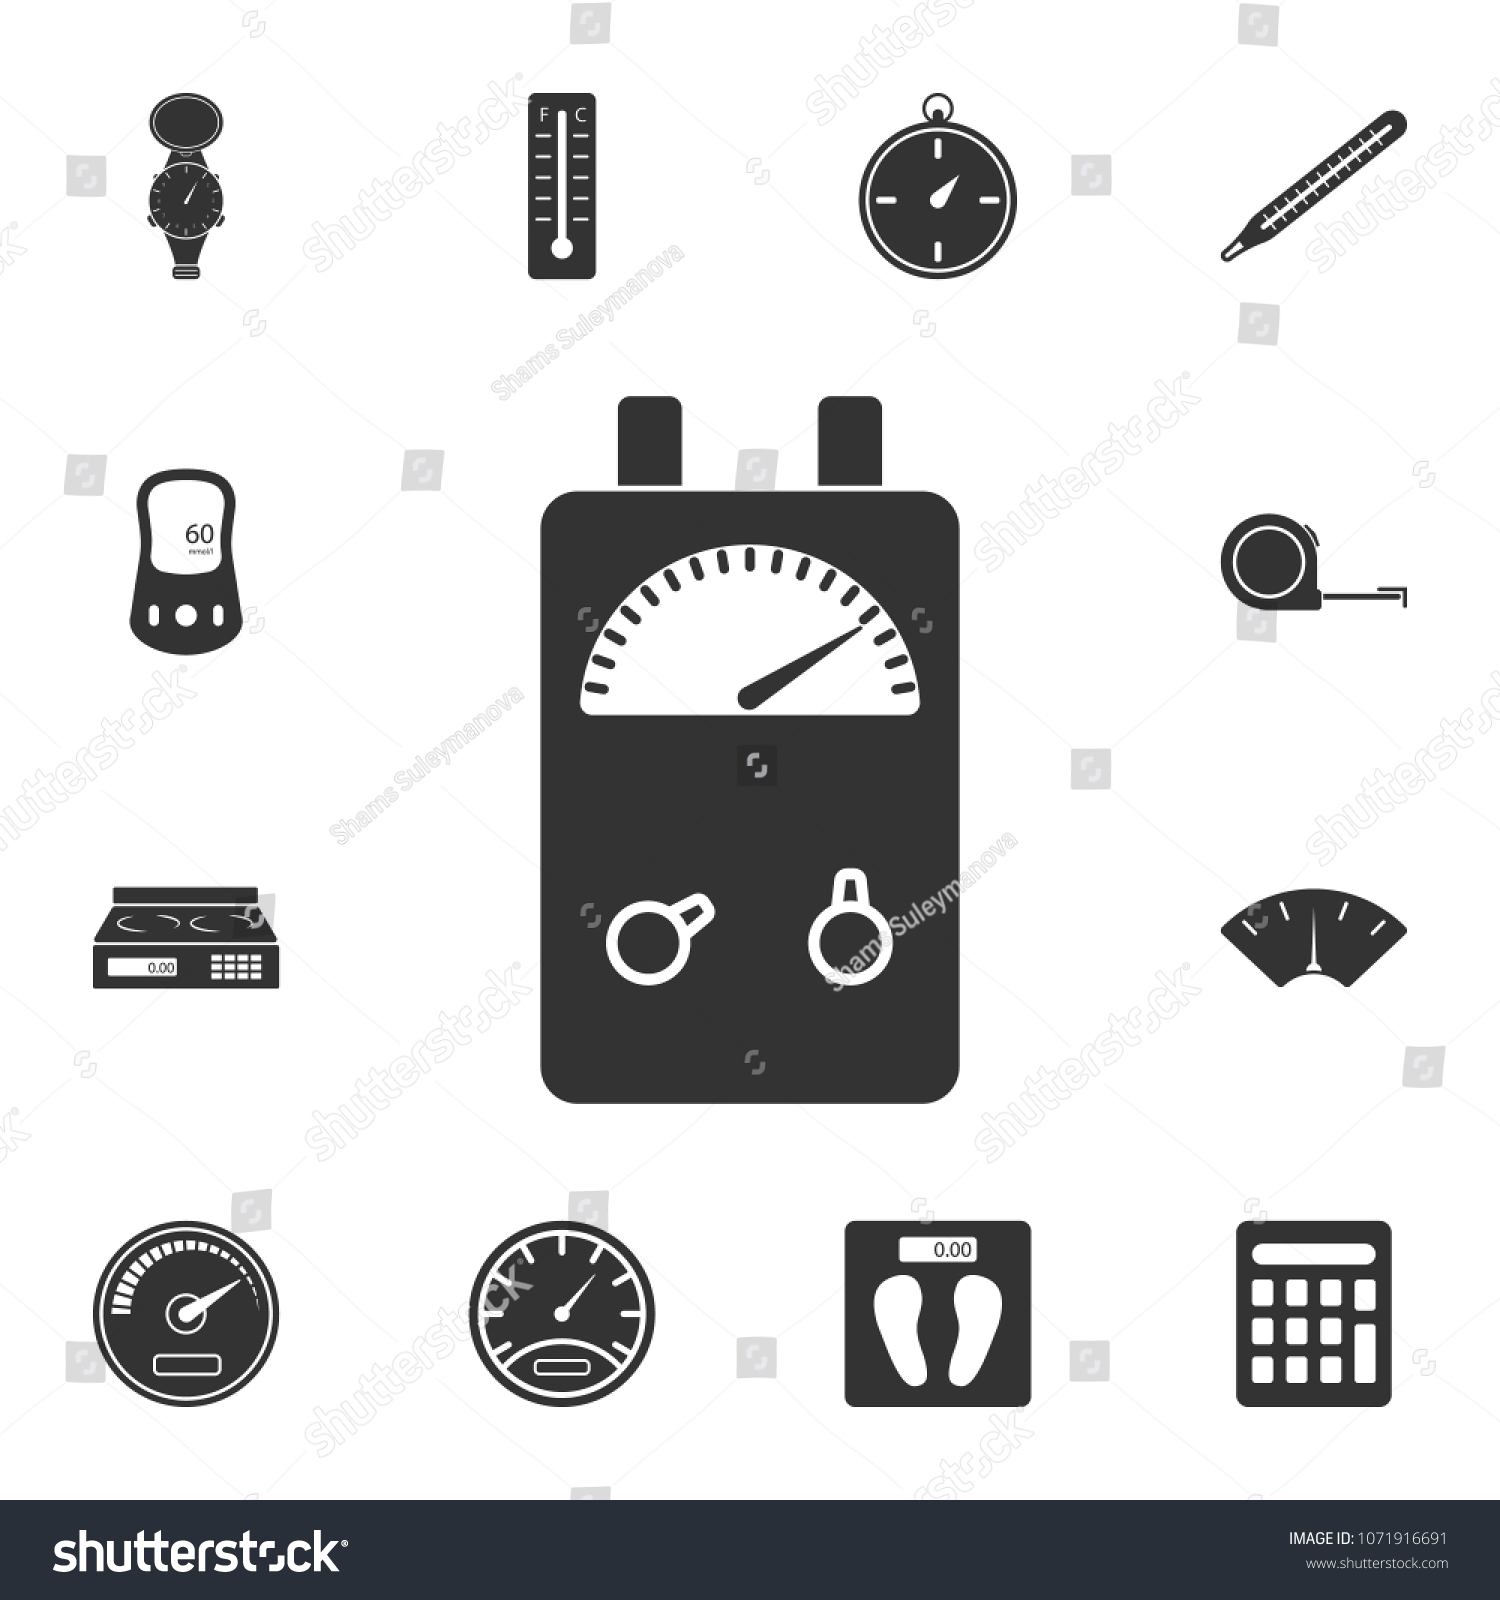 Voltage Ampere Meter Tester Icon Simple Stock Illustration ...